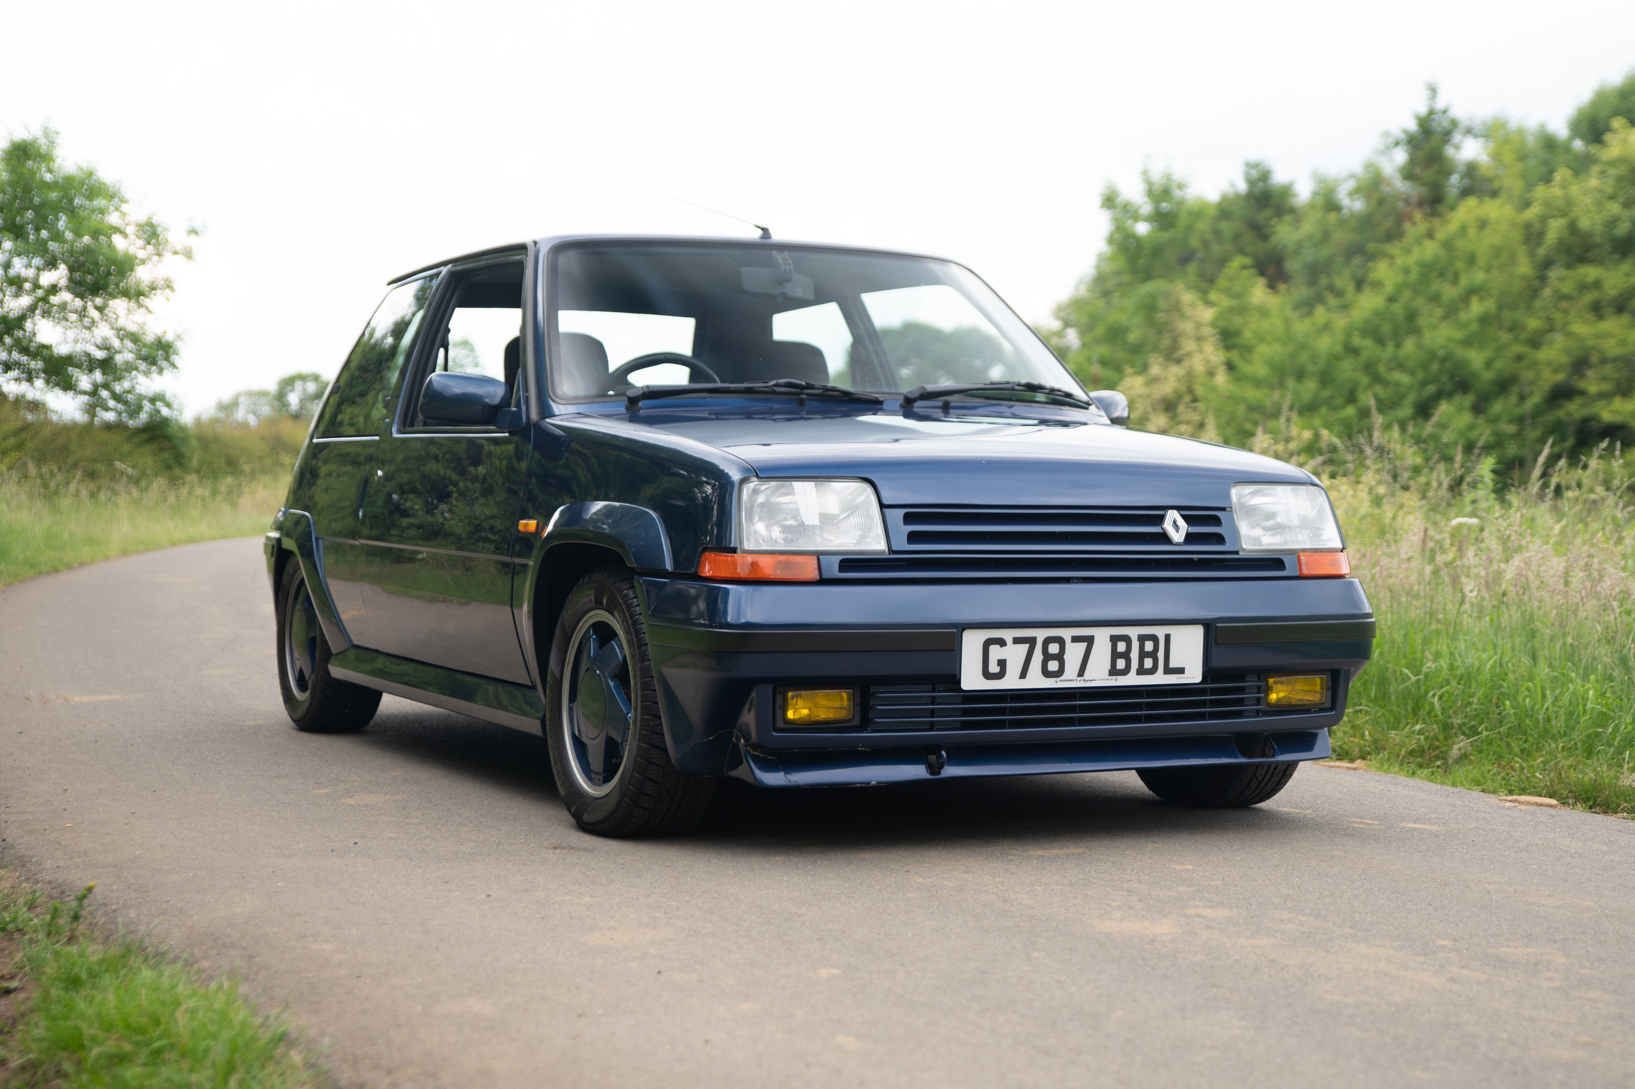 1990 RENAULT 5 GT TURBO RAIDER